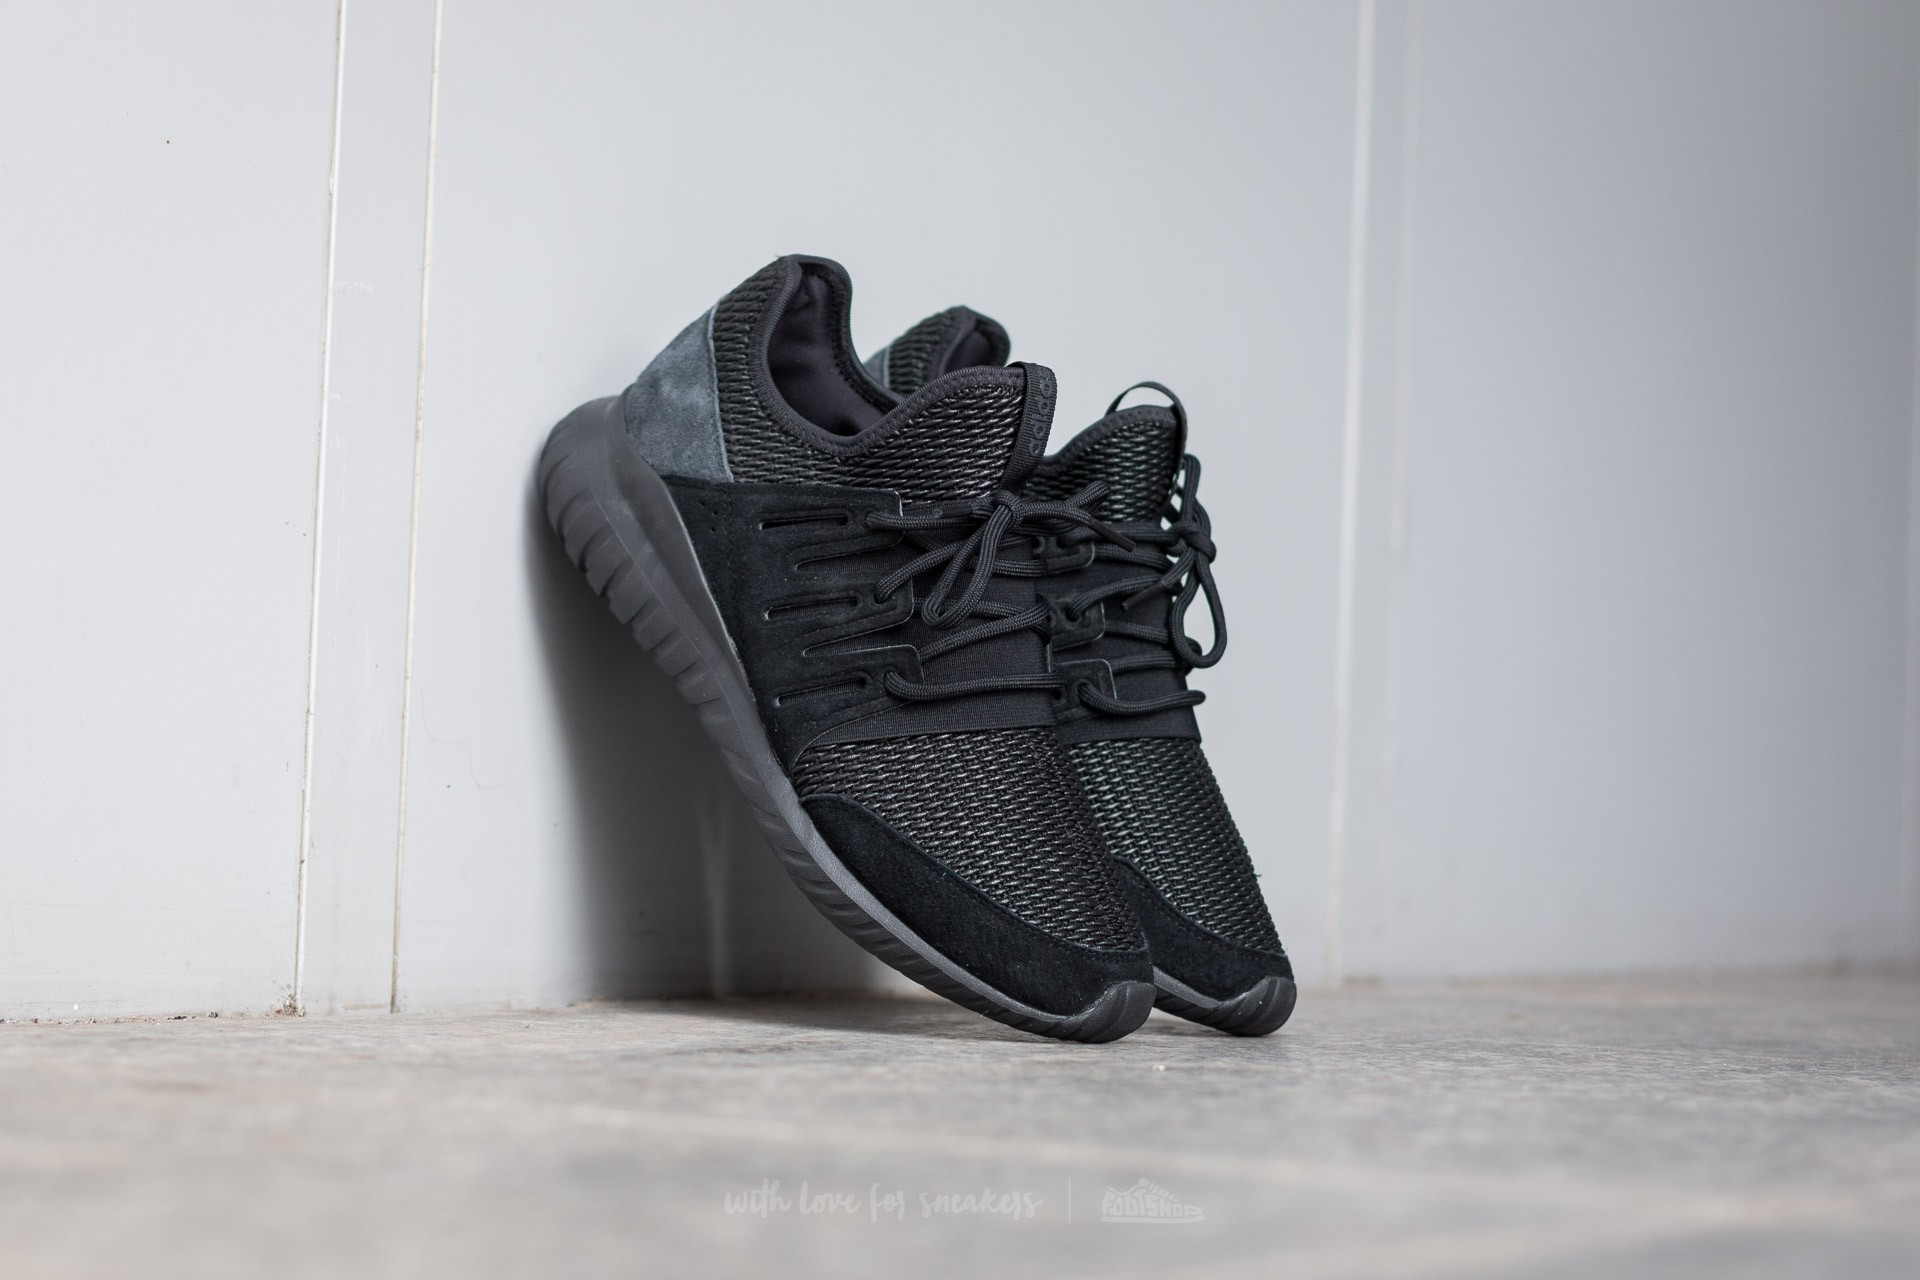 Adidas Tubular Runner Triple Black On feet